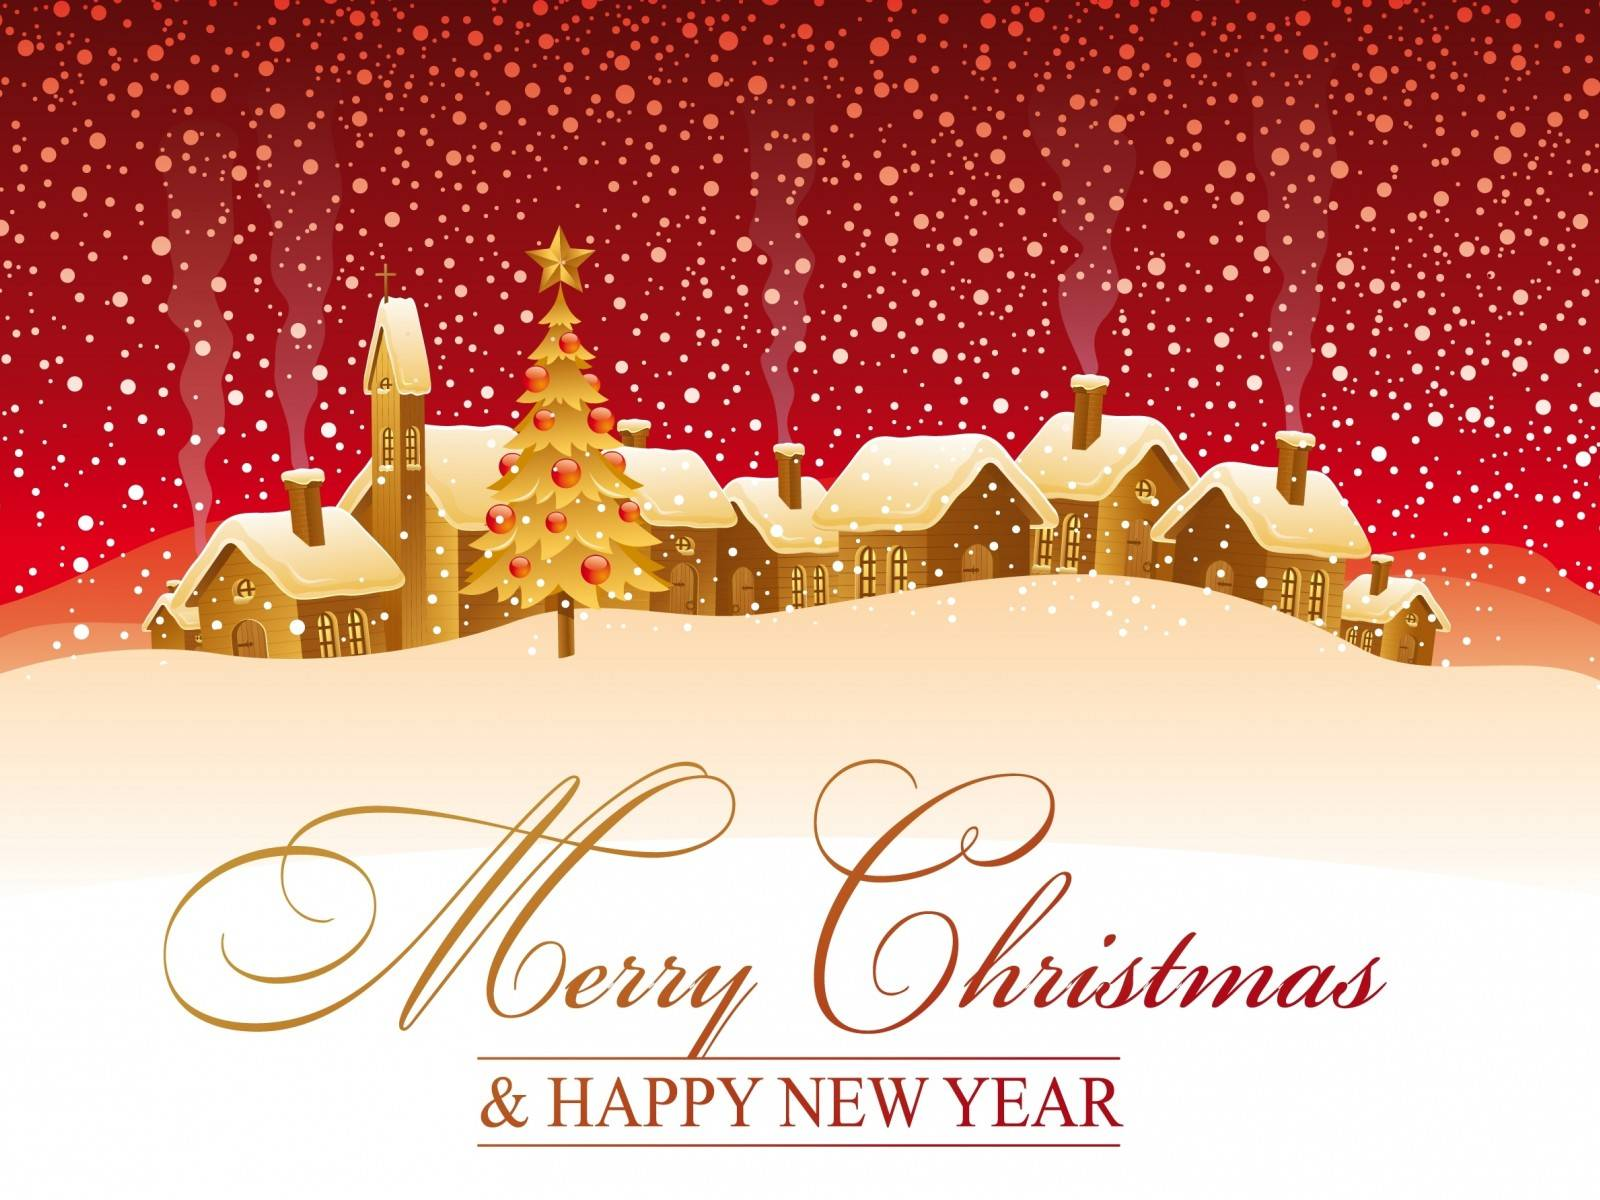 Happy Christmas Wallpaper Download